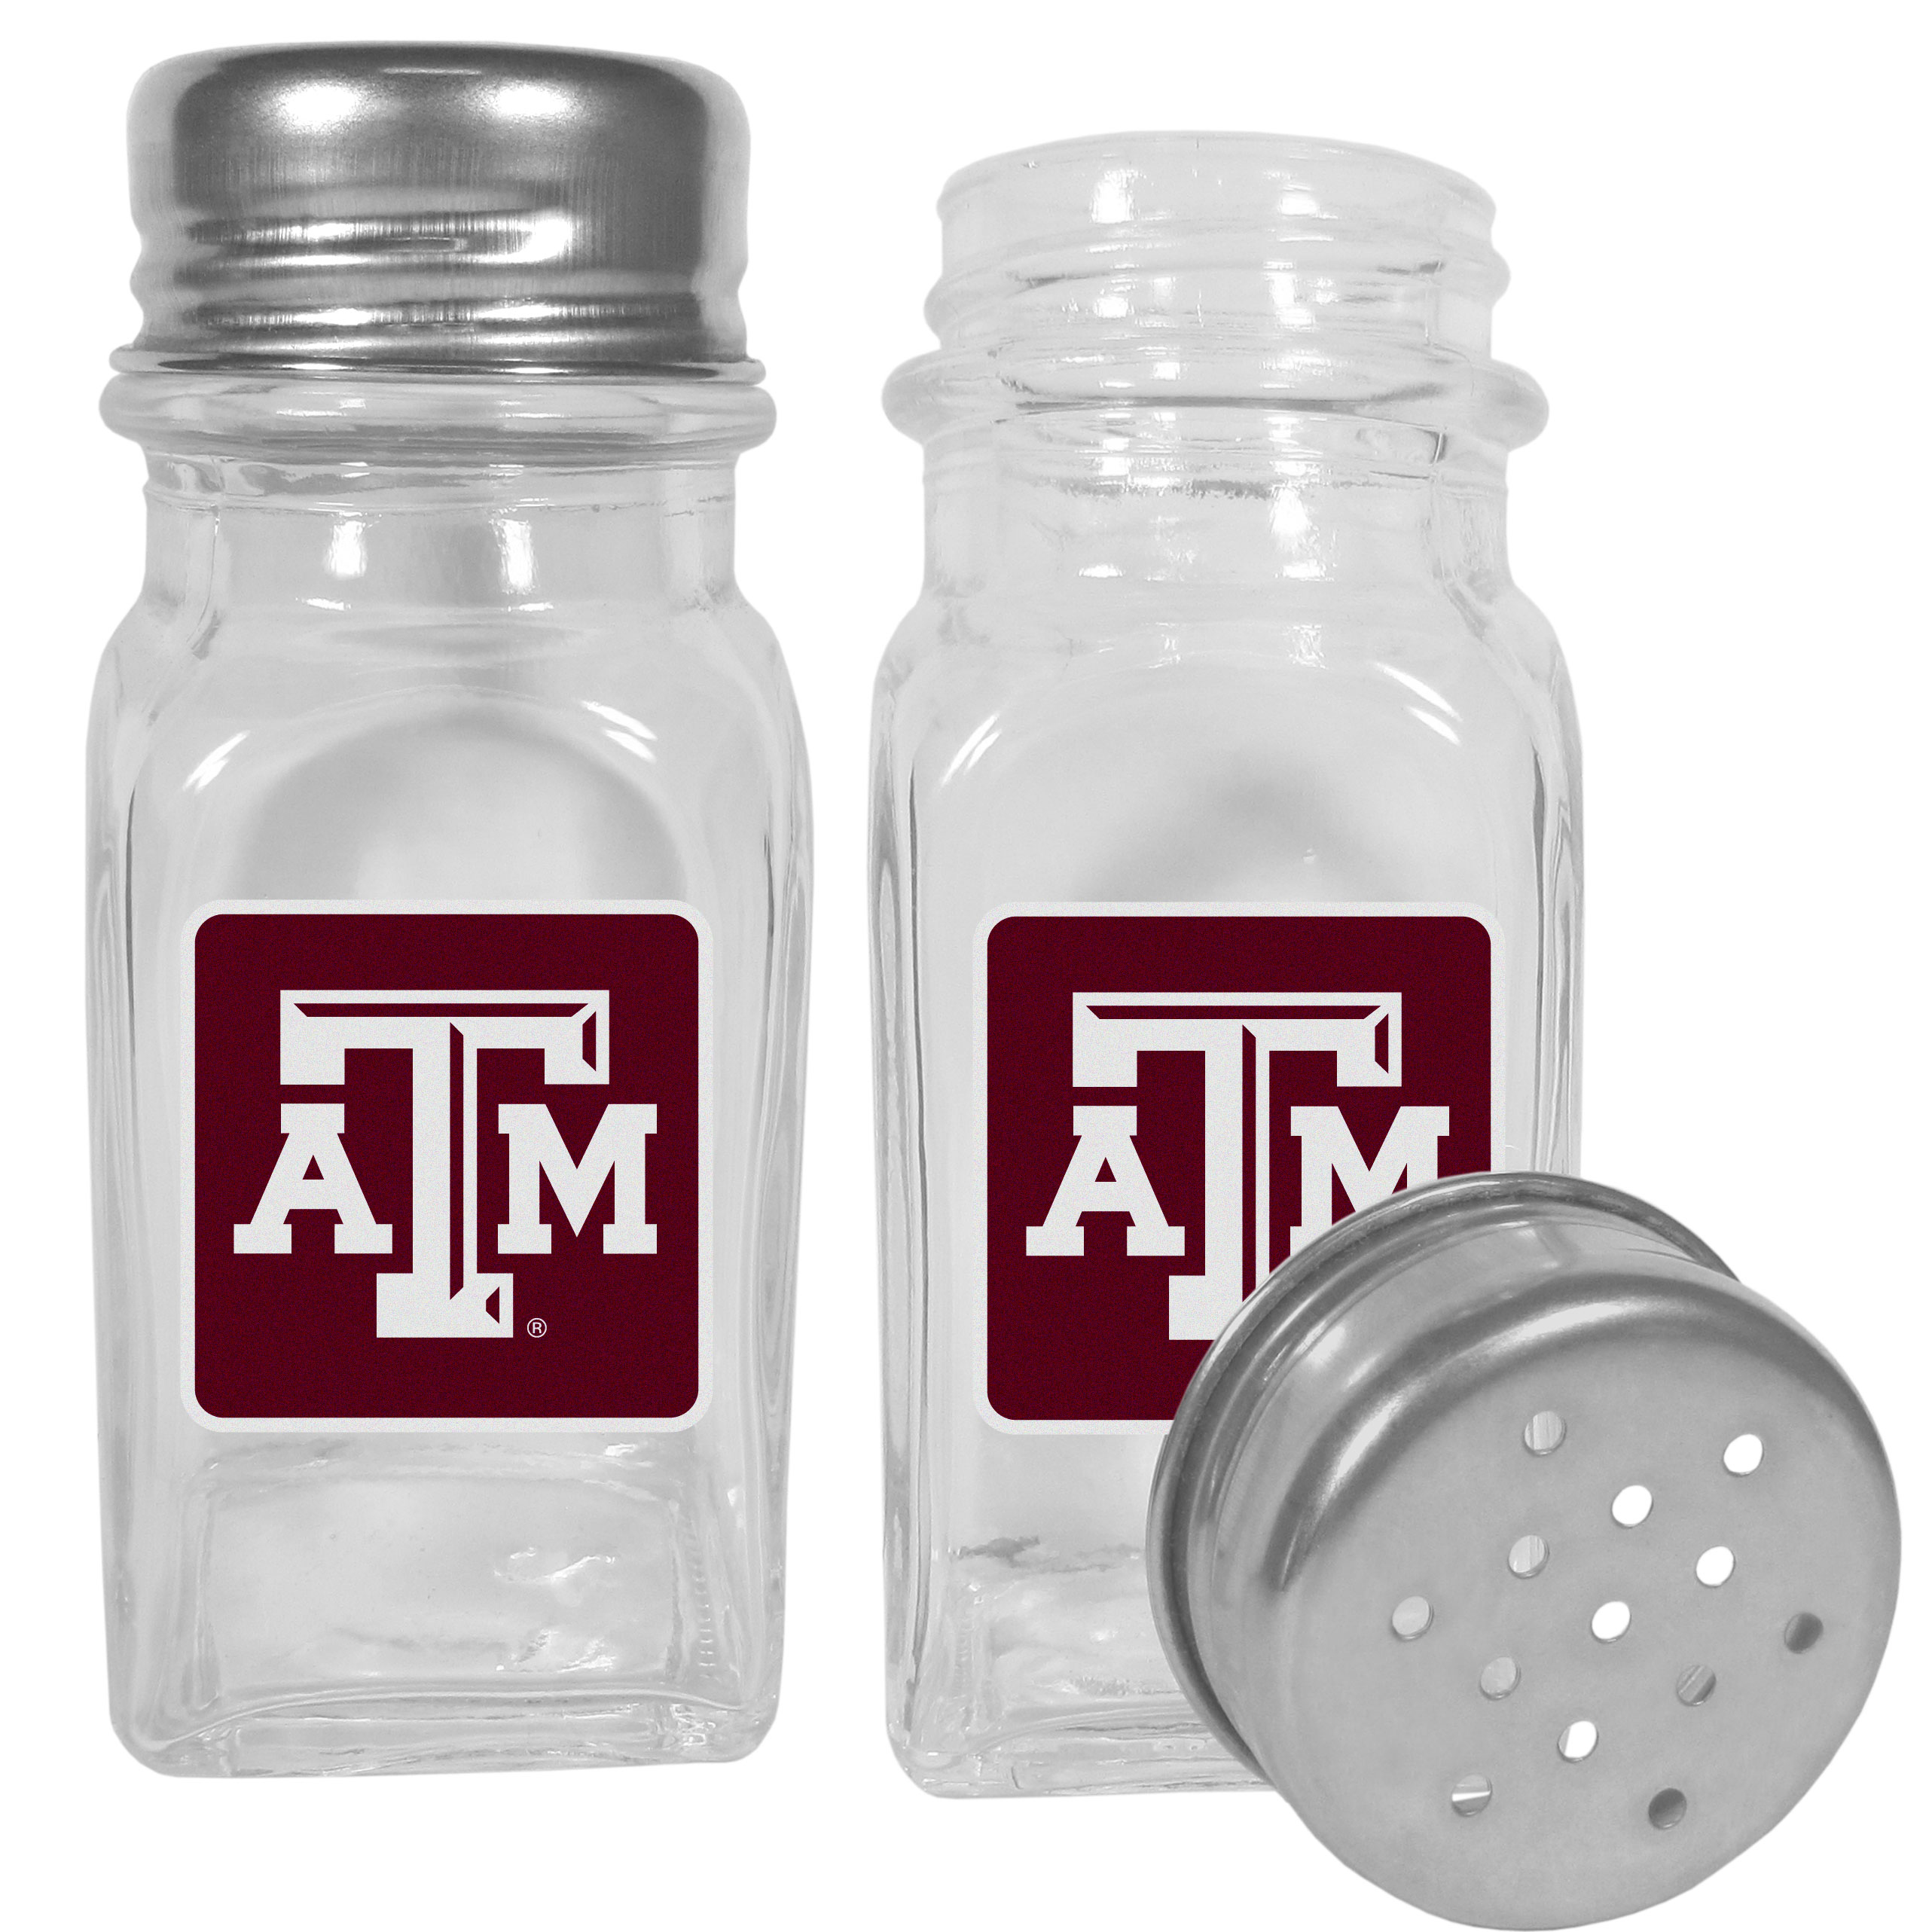 Texas A and M Aggies Graphics Salt and Pepper Shaker - No tailgate party is complete without your Texas A & M Aggies salt & pepper shakers featuring bright team logos. The diner replica salt and pepper shakers are glass with screw top lids. These team shakers are a great grill accessory whether you are barbecuing on the patio, picnicing or having a game day party.